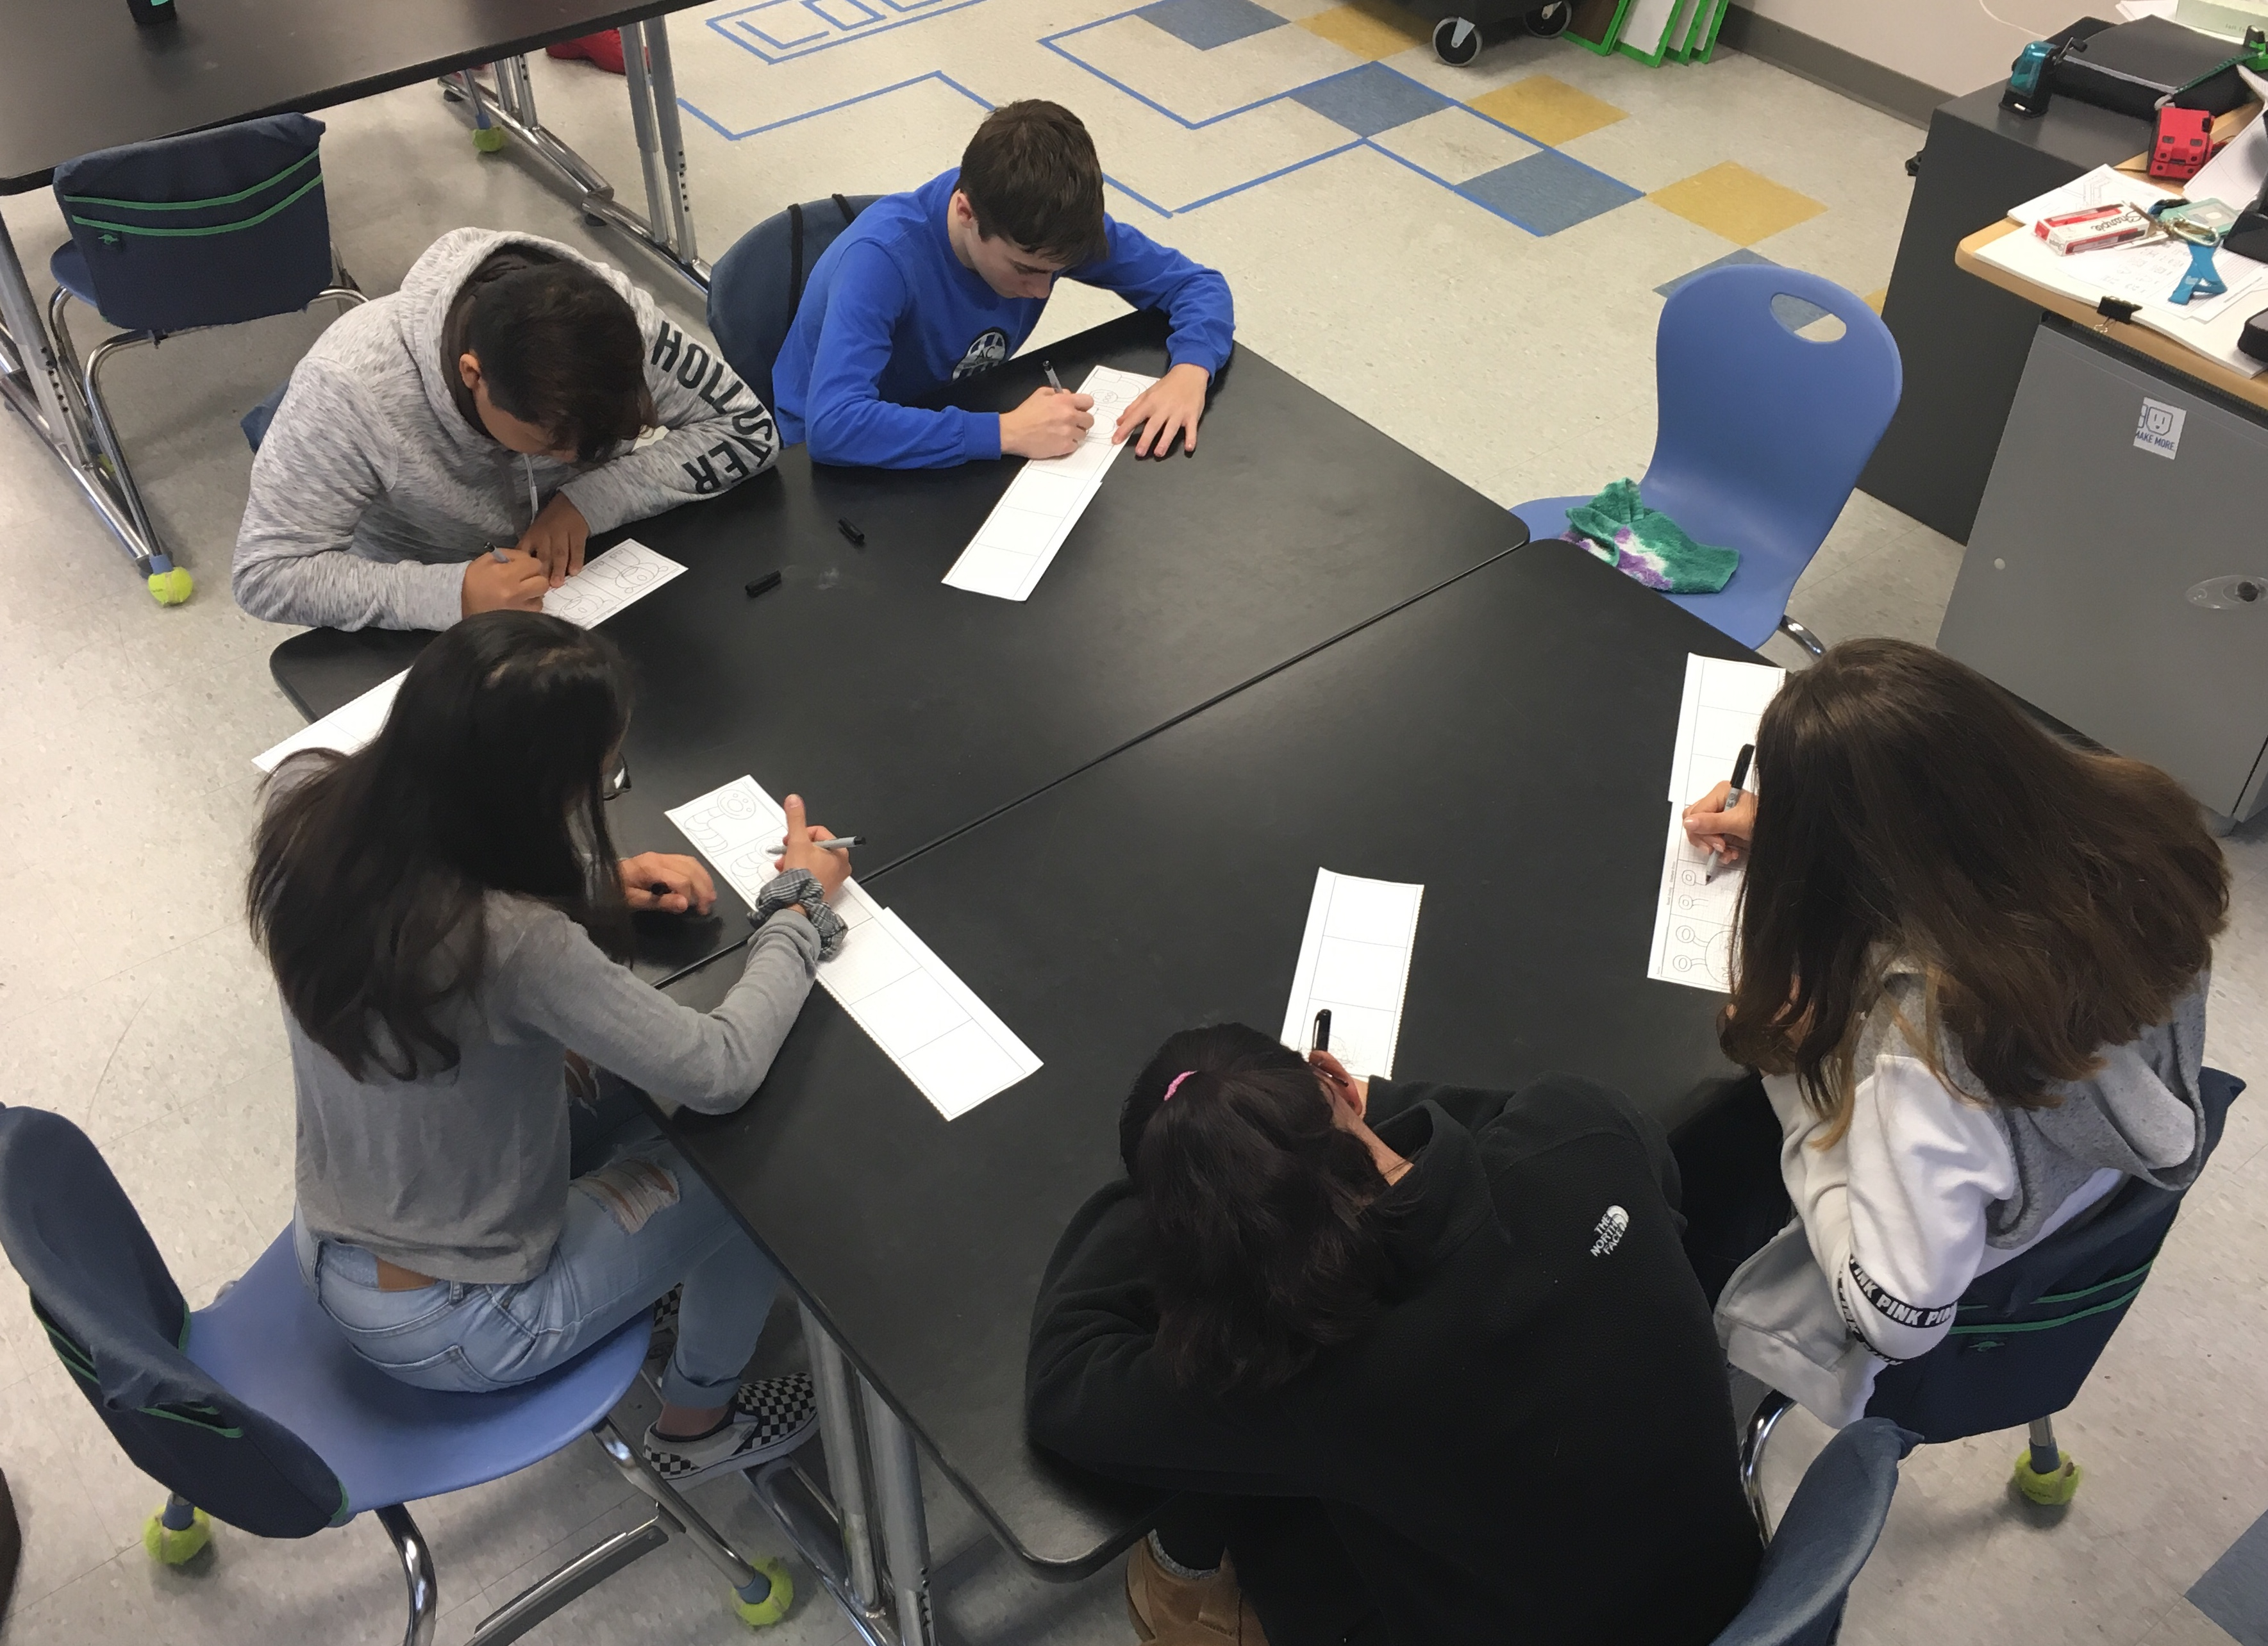 five students working on the activity, sitting around a table